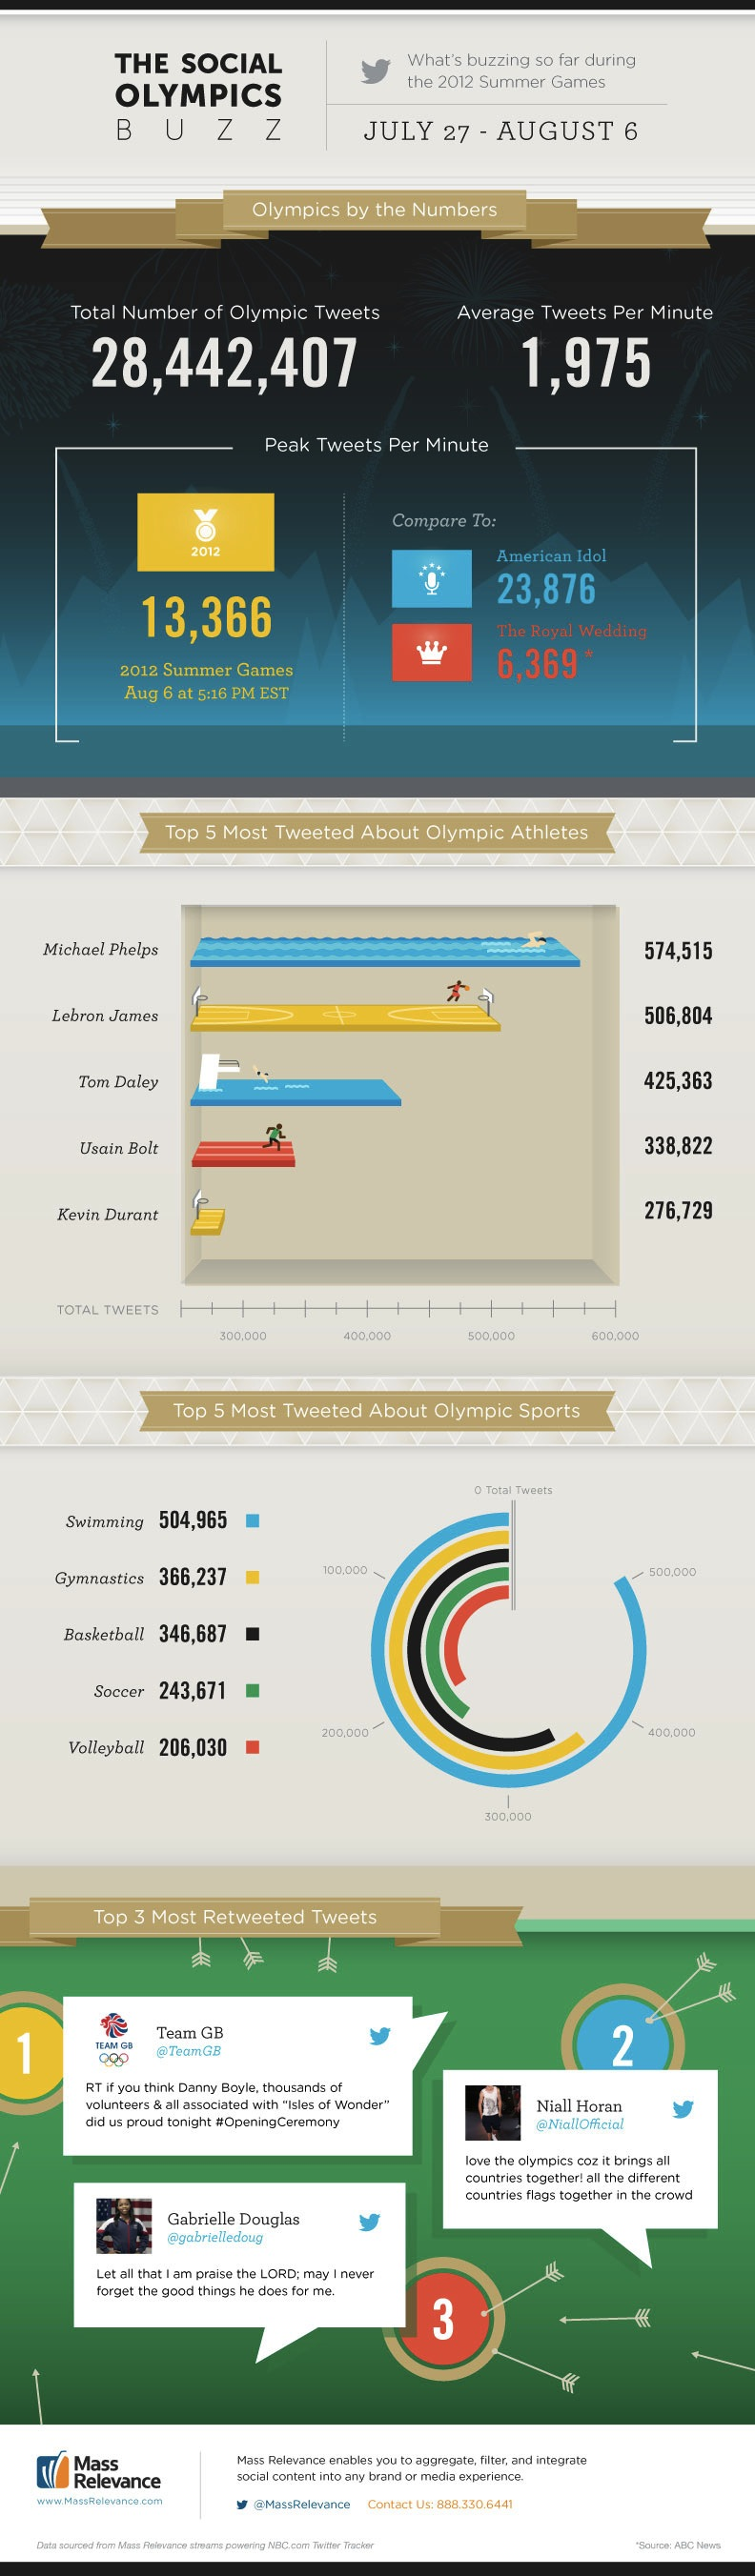 How Twitter Has Talked About the Summer Olympics